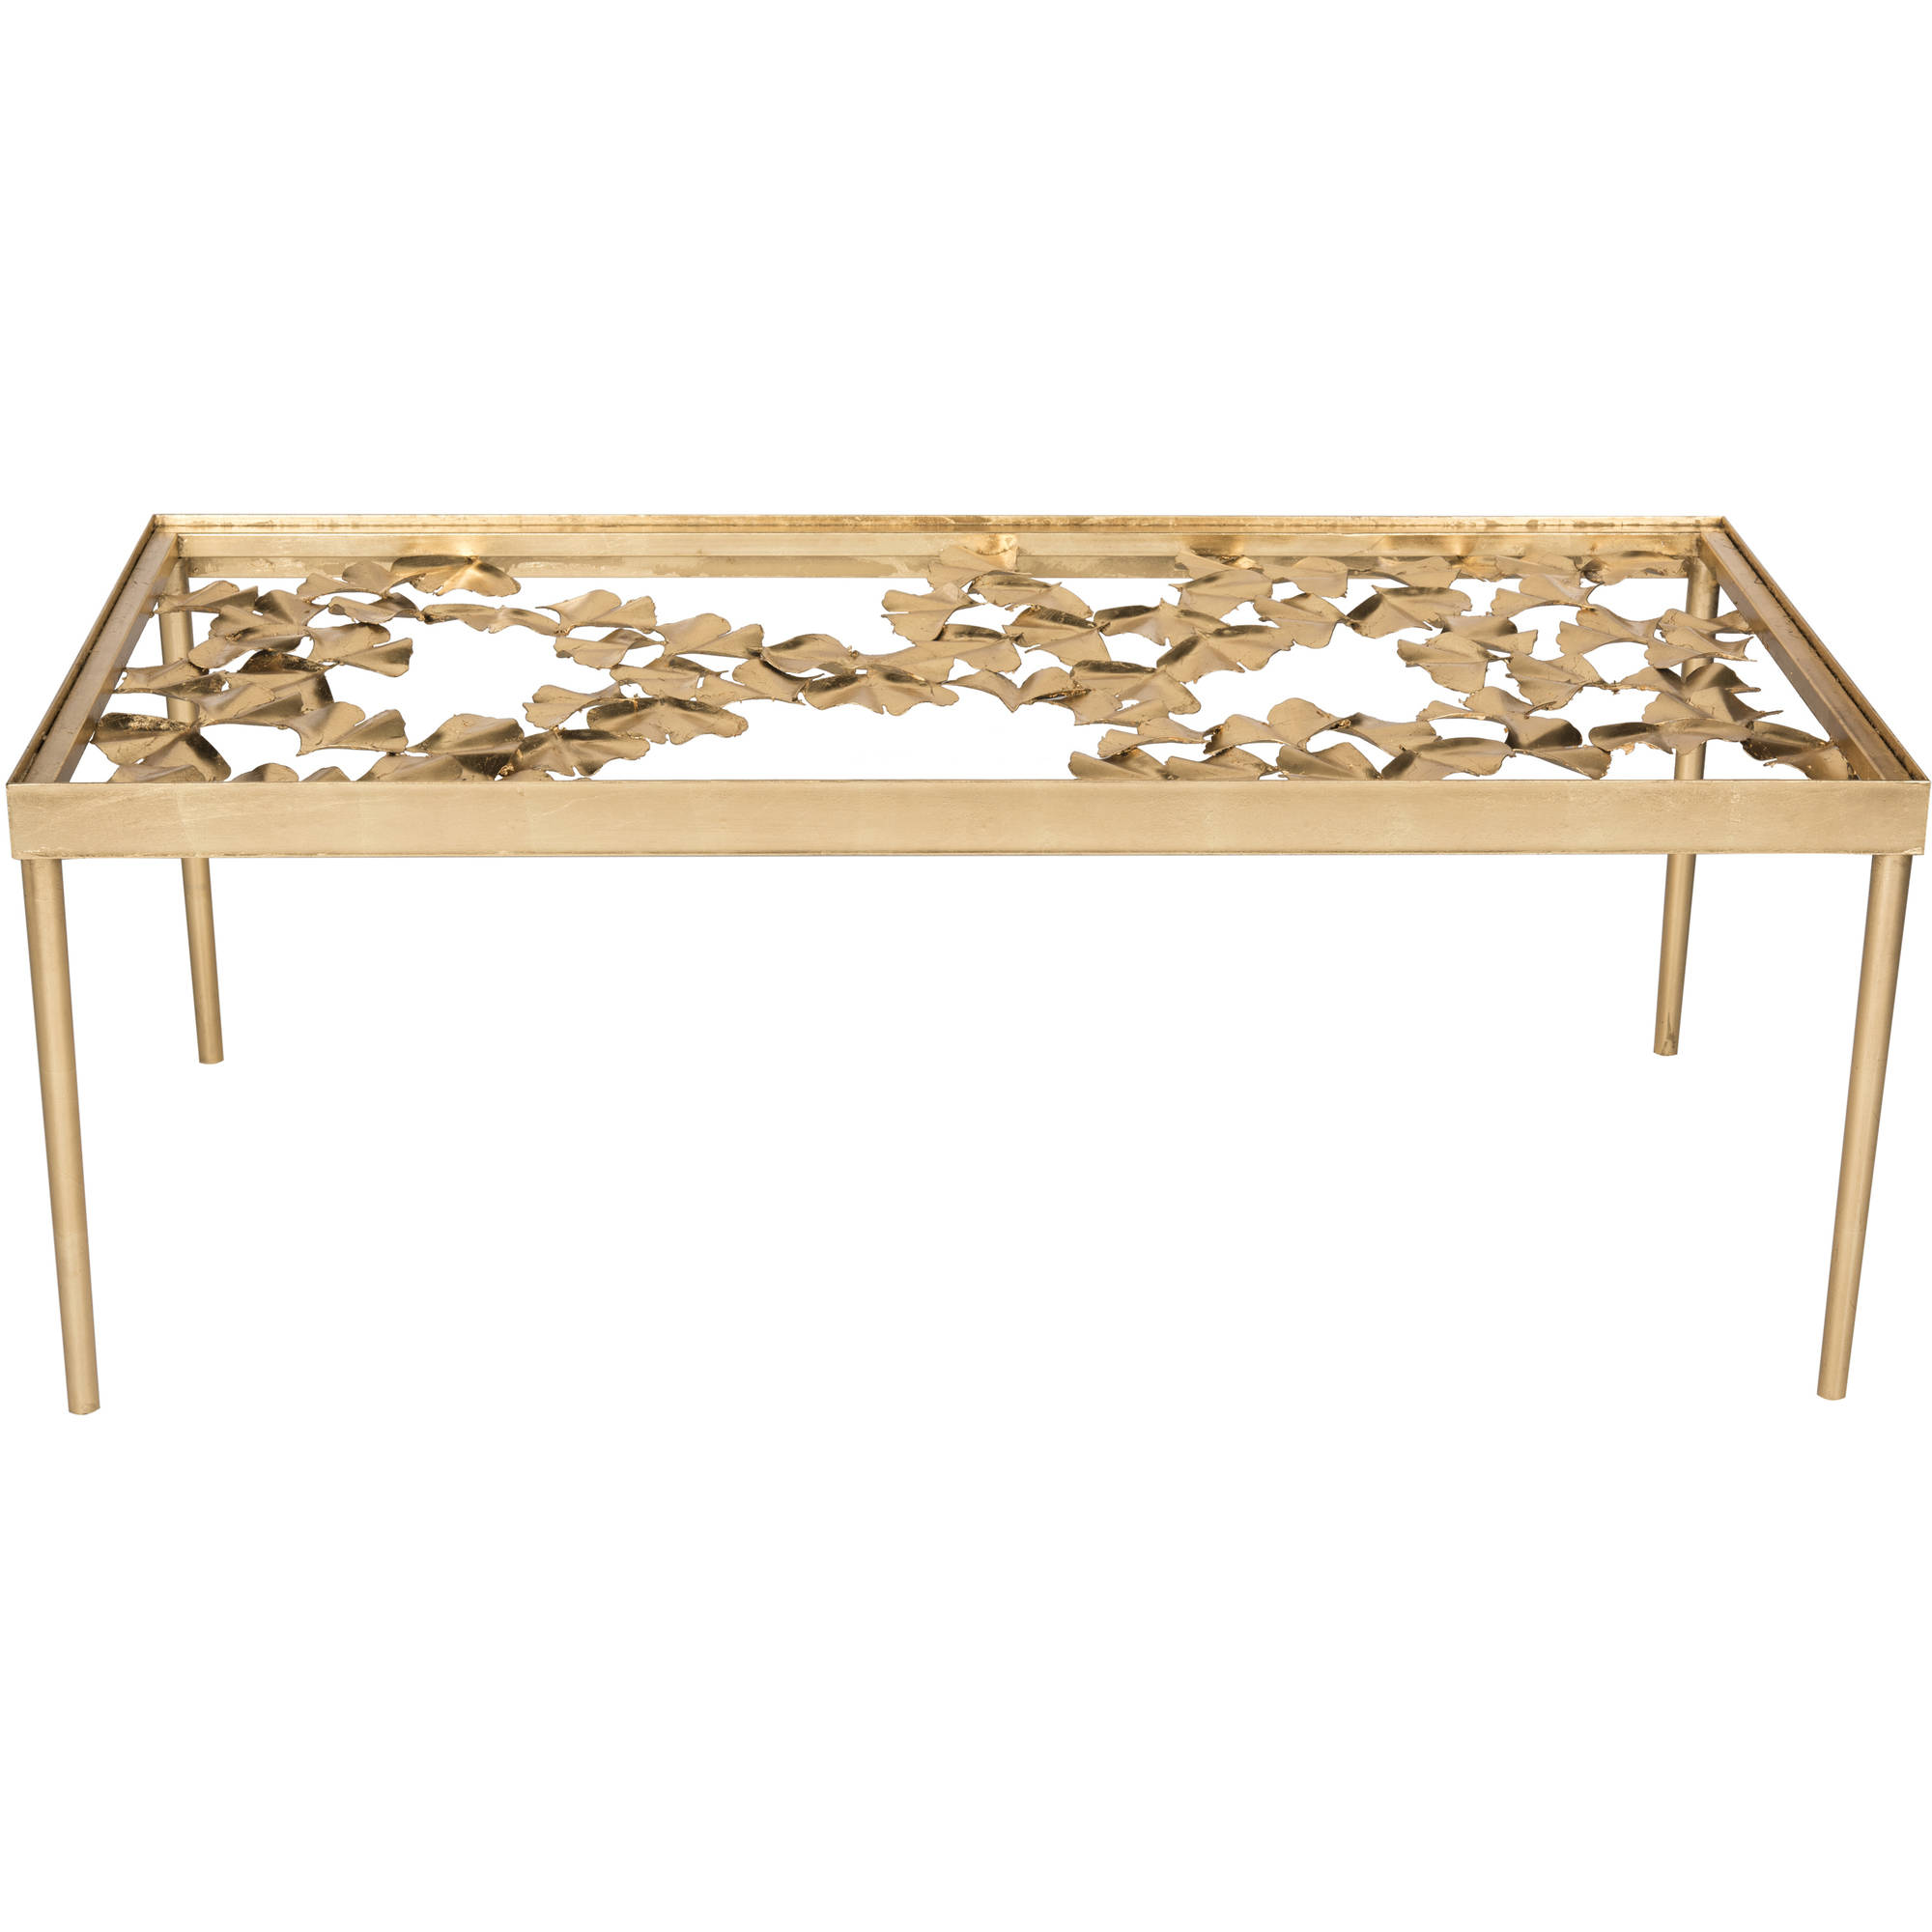 "Safavieh Otto 48"" Width Ginkgo Leaf Coffee Table Antique Gold"